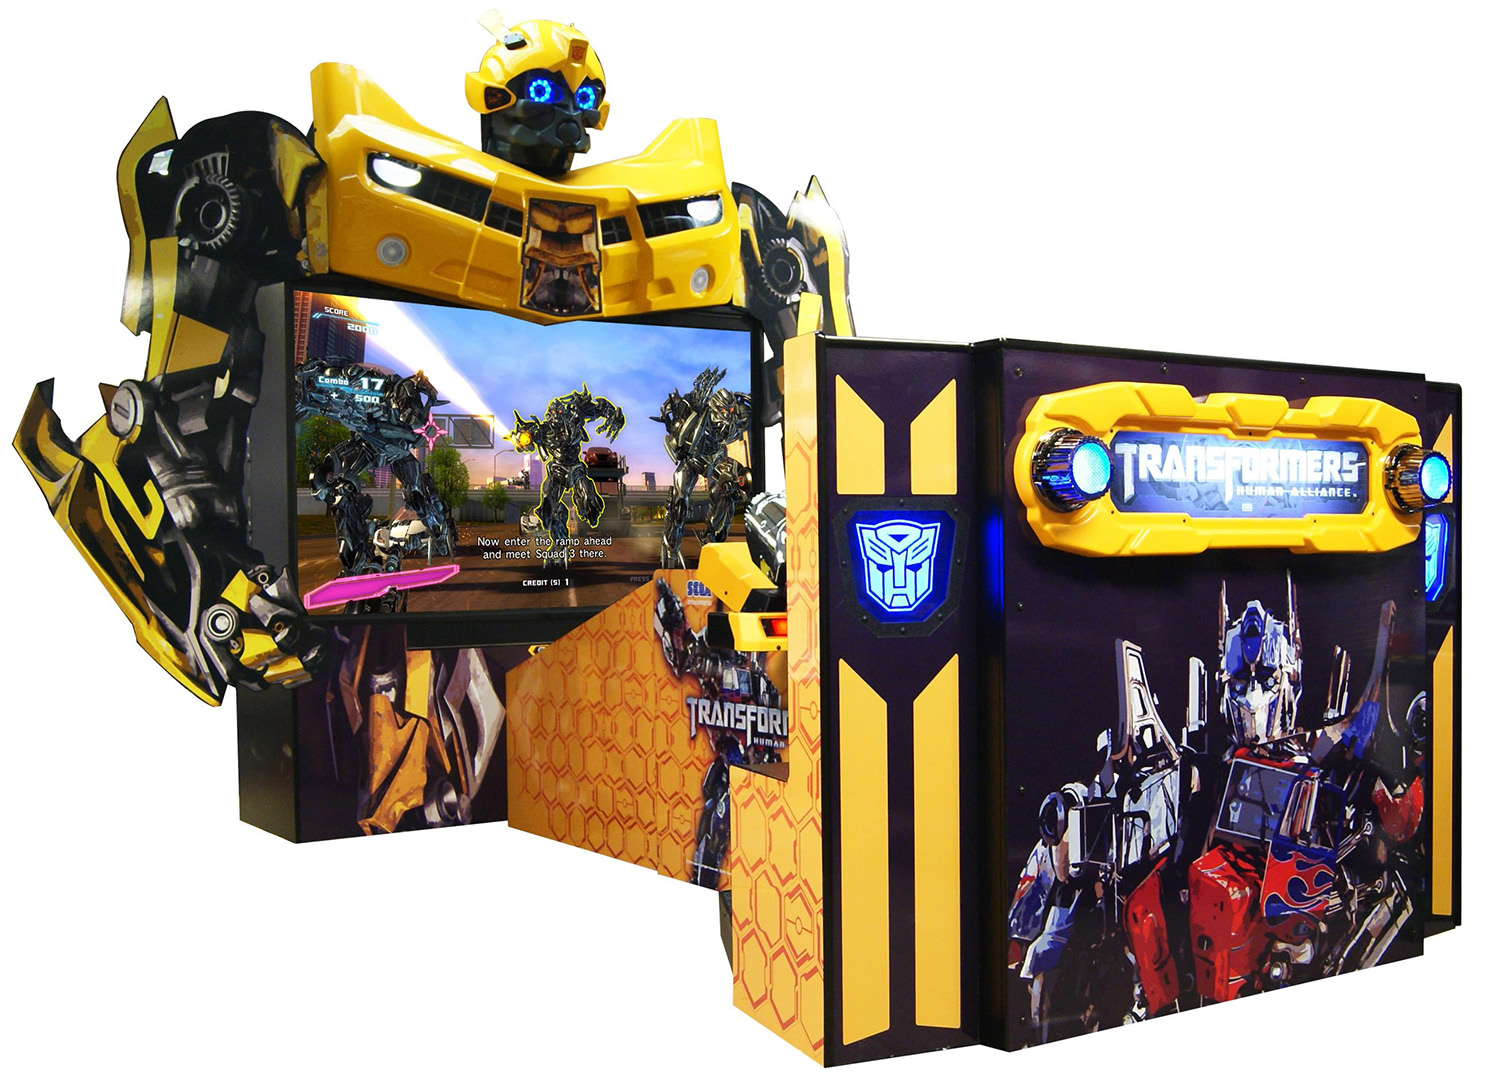 Transformers Human Alliance Arcade Game Let's Play Video At The ...